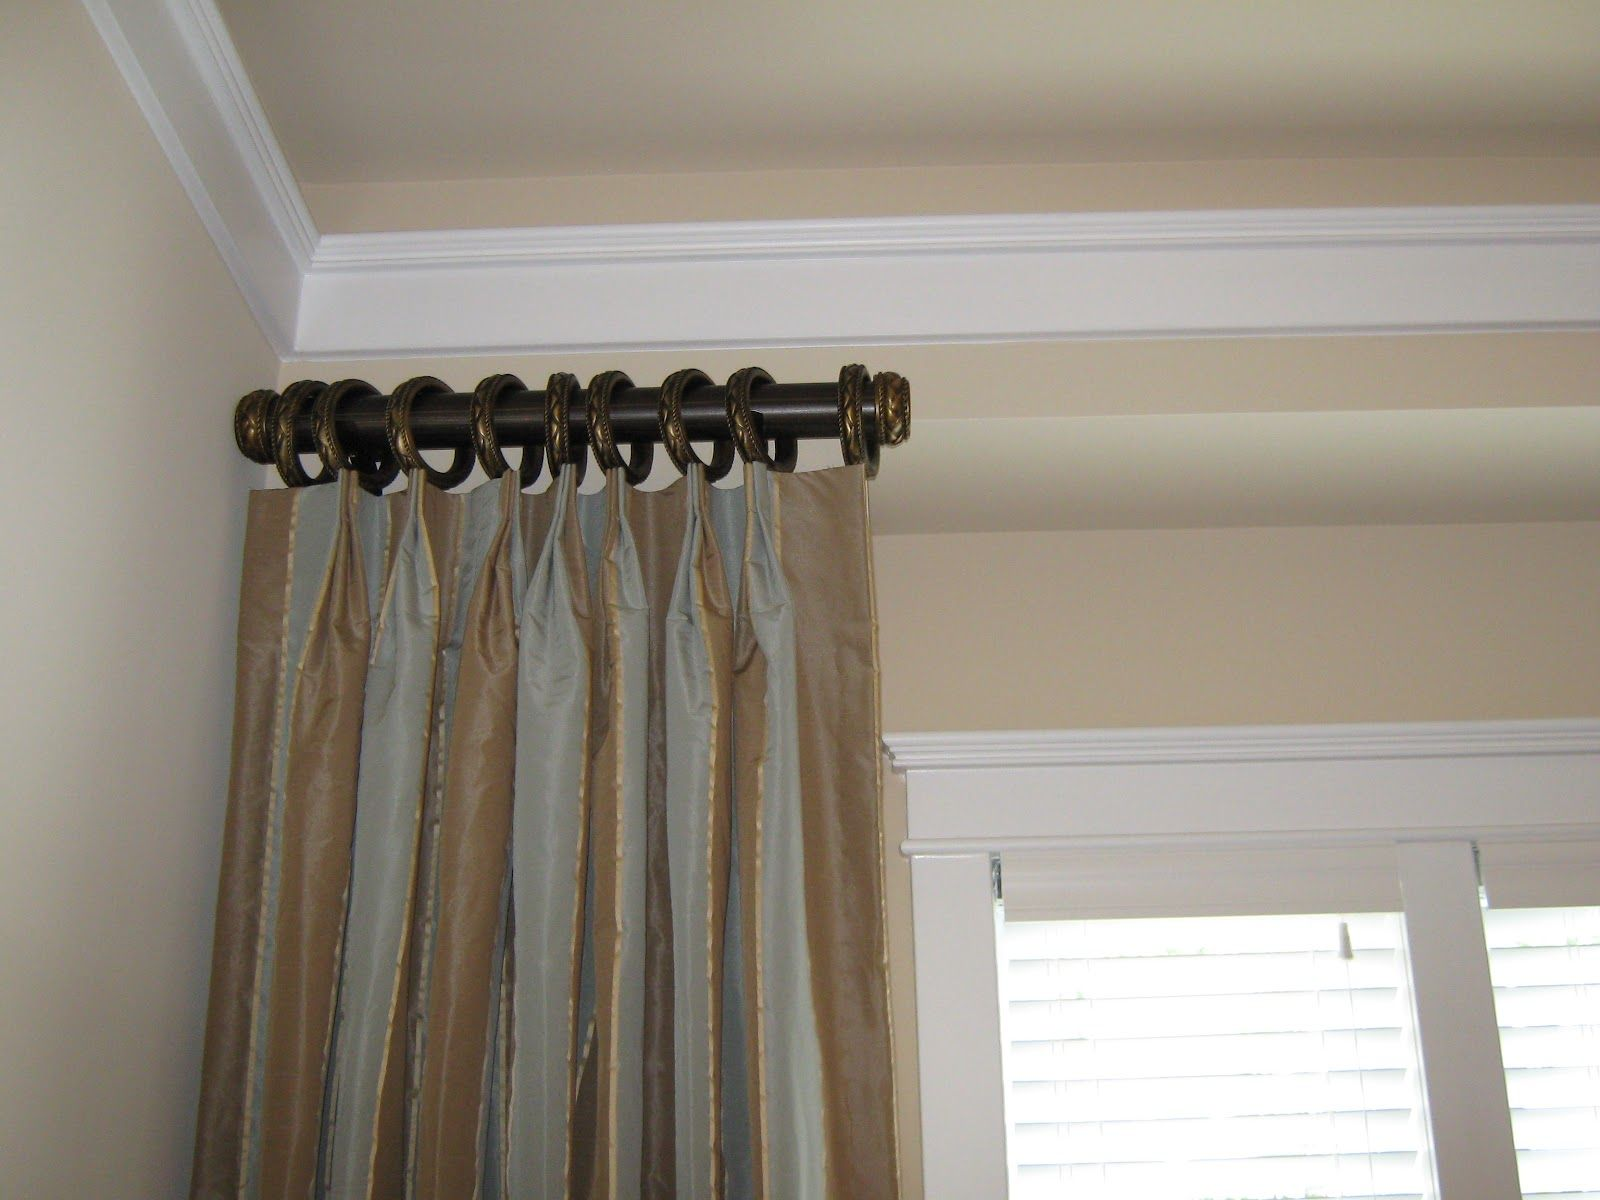 Decorative Side Panel Curtain Rod Panels Is A Decorative Use